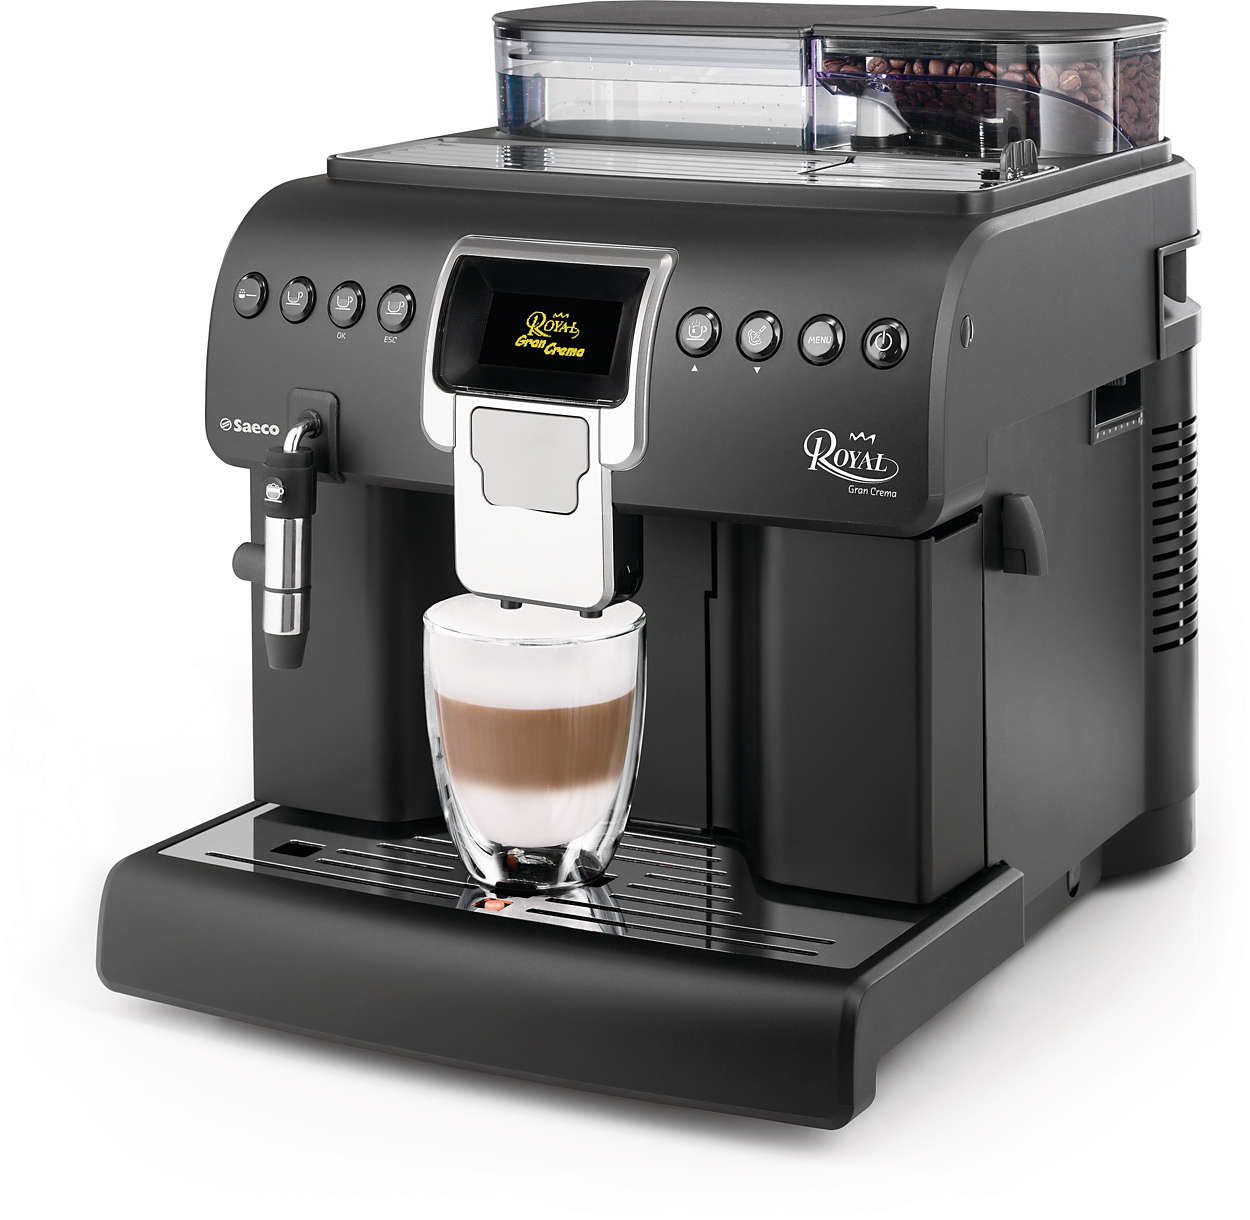 Royal machine espresso super automatique hd8920 01 saeco - Cafetiere semi professionnelle ...